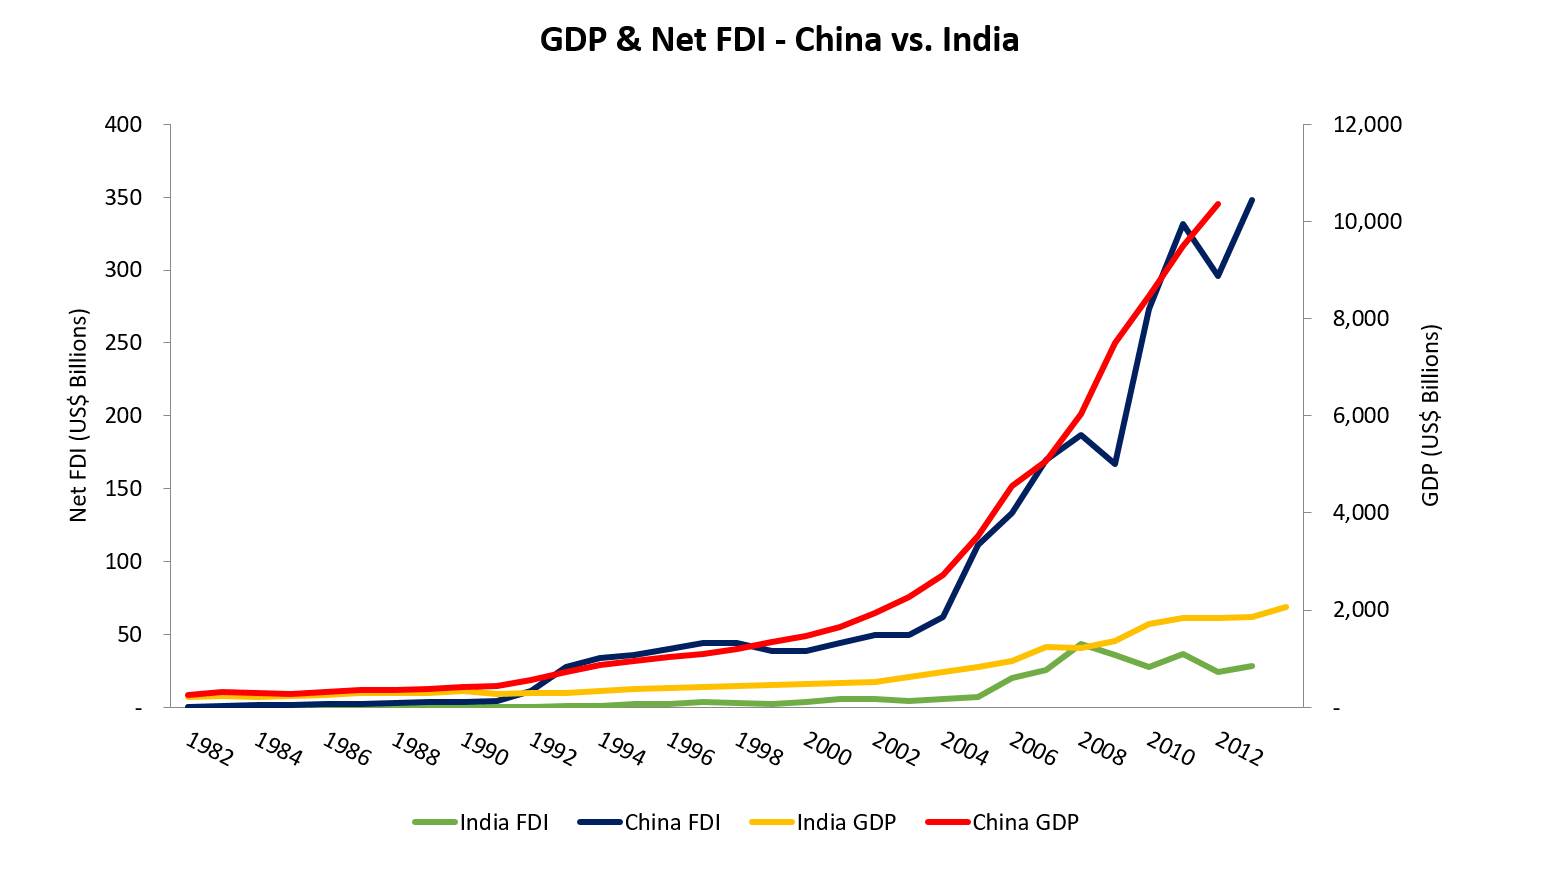 INDIA-VS-CHINA-Figure-2-min